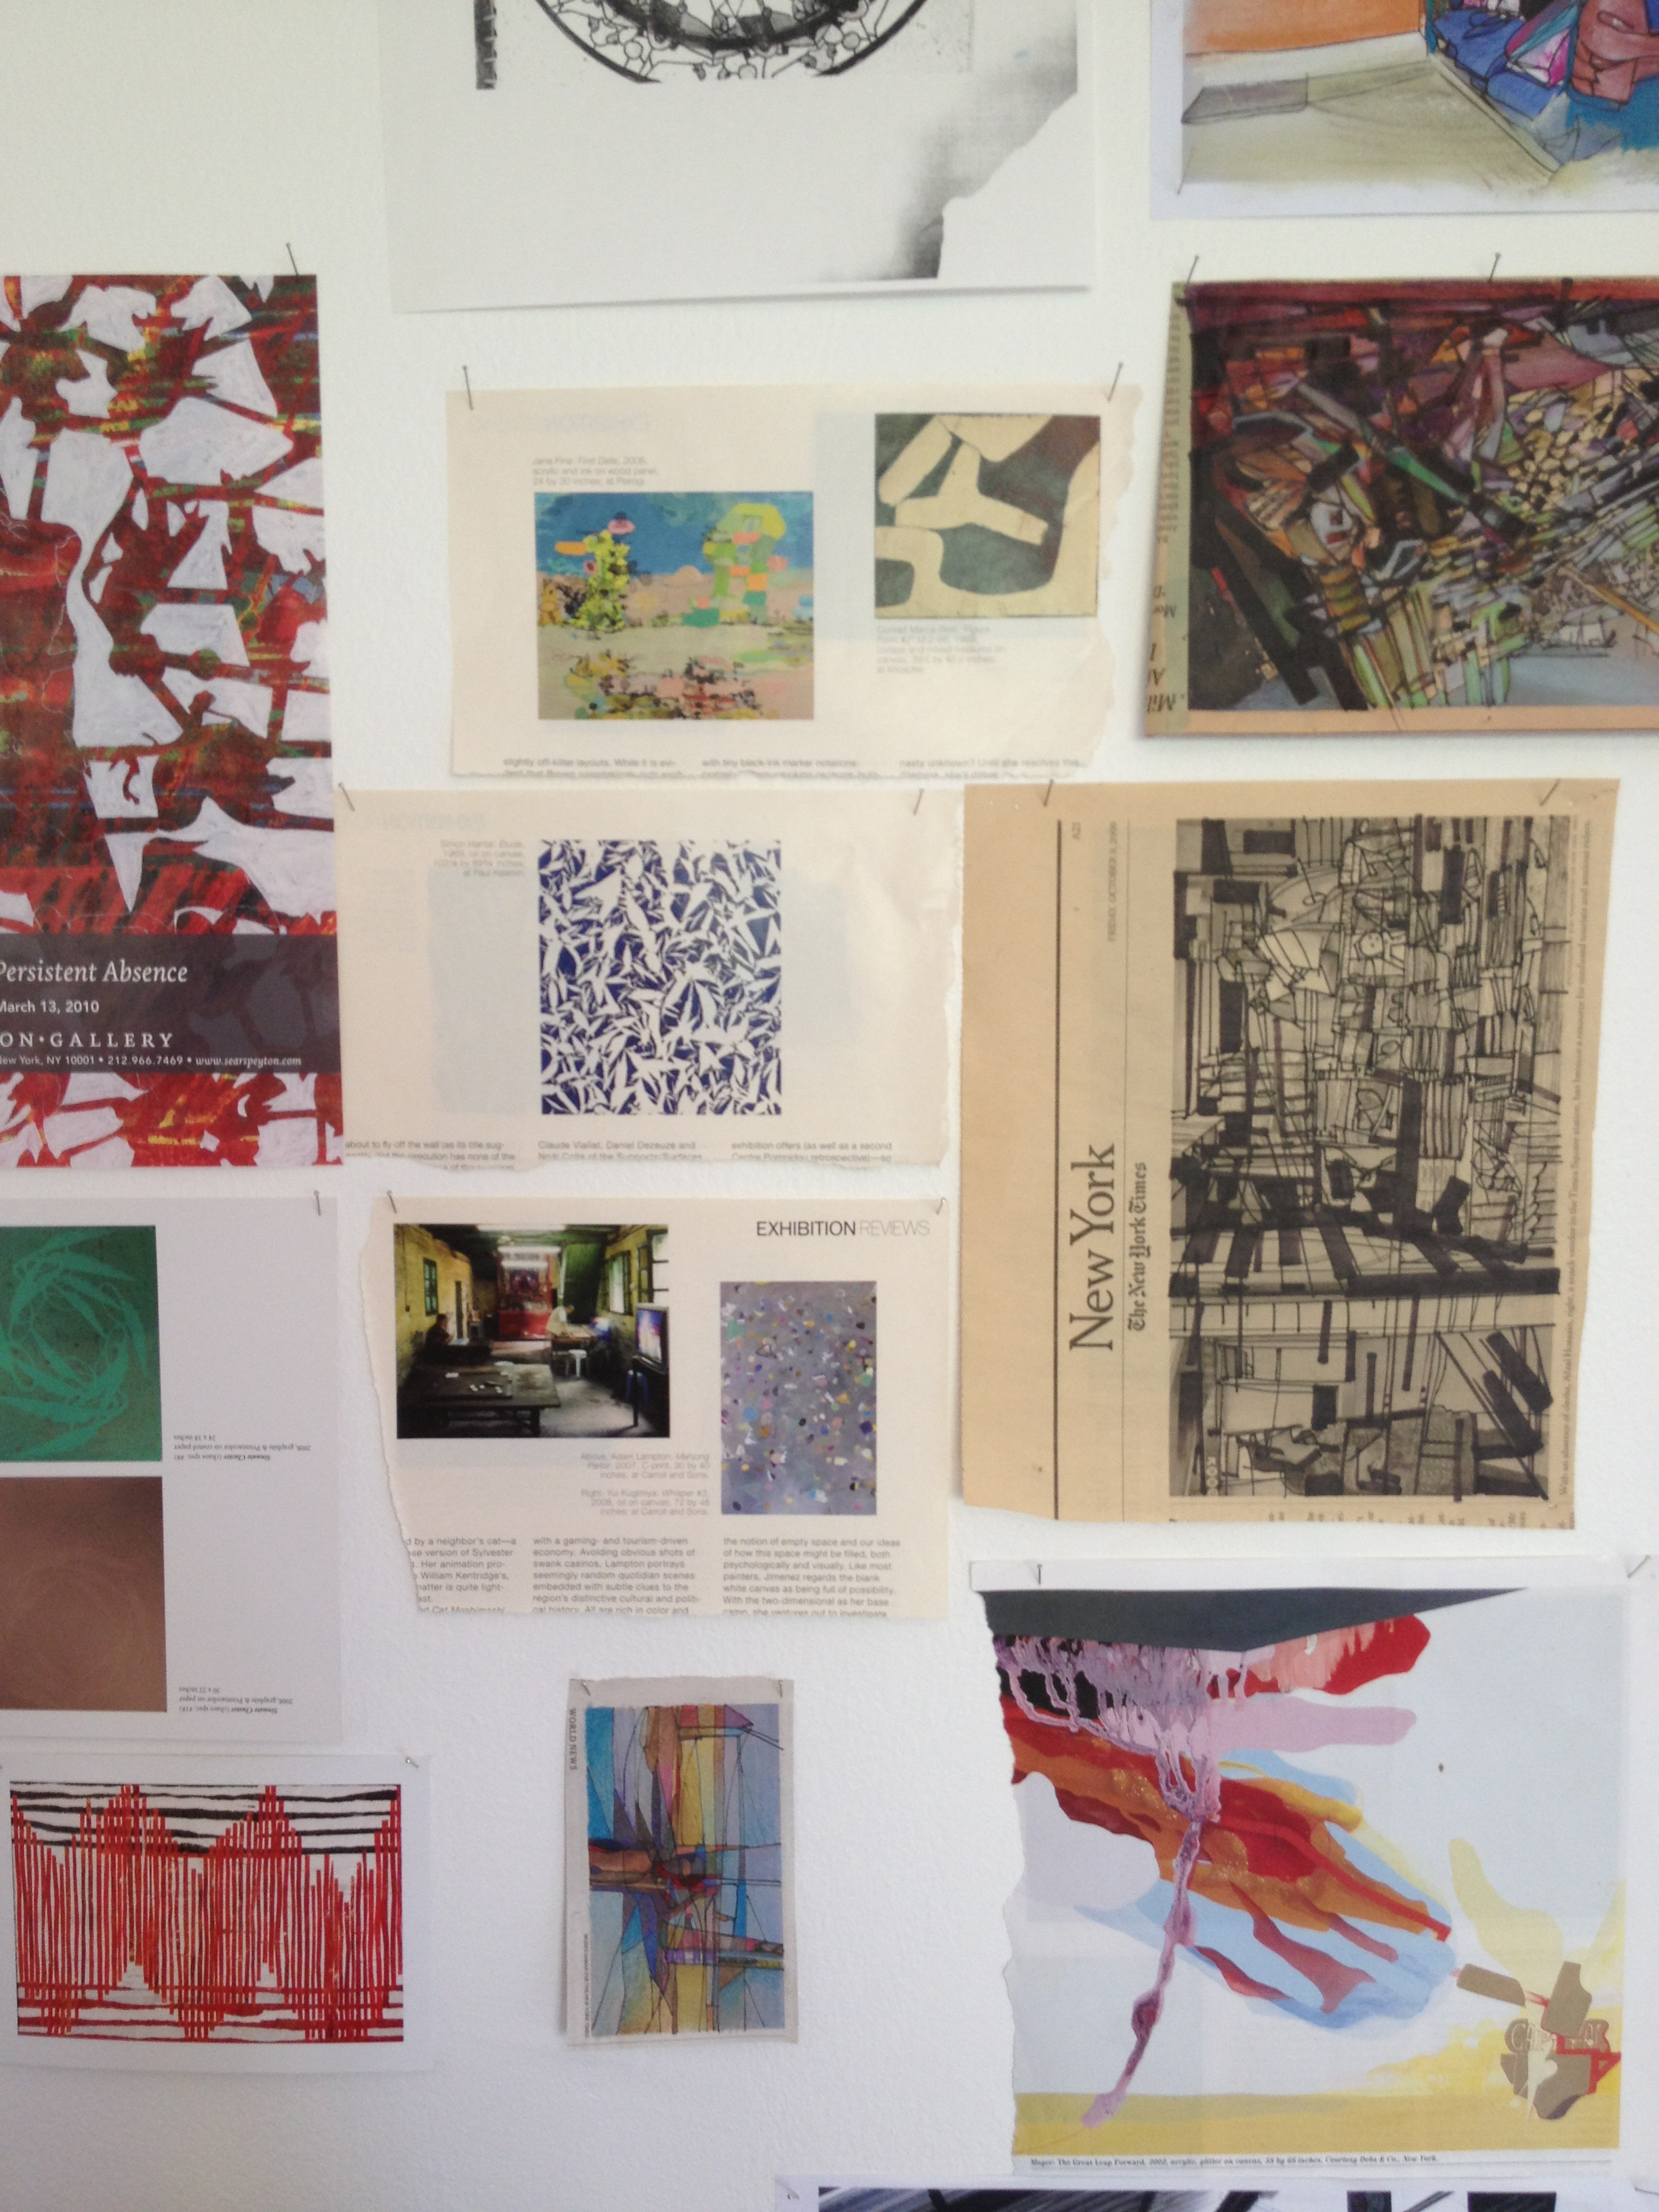 Inspiration, drawings and experiments in Jill Thomas Whately's studio